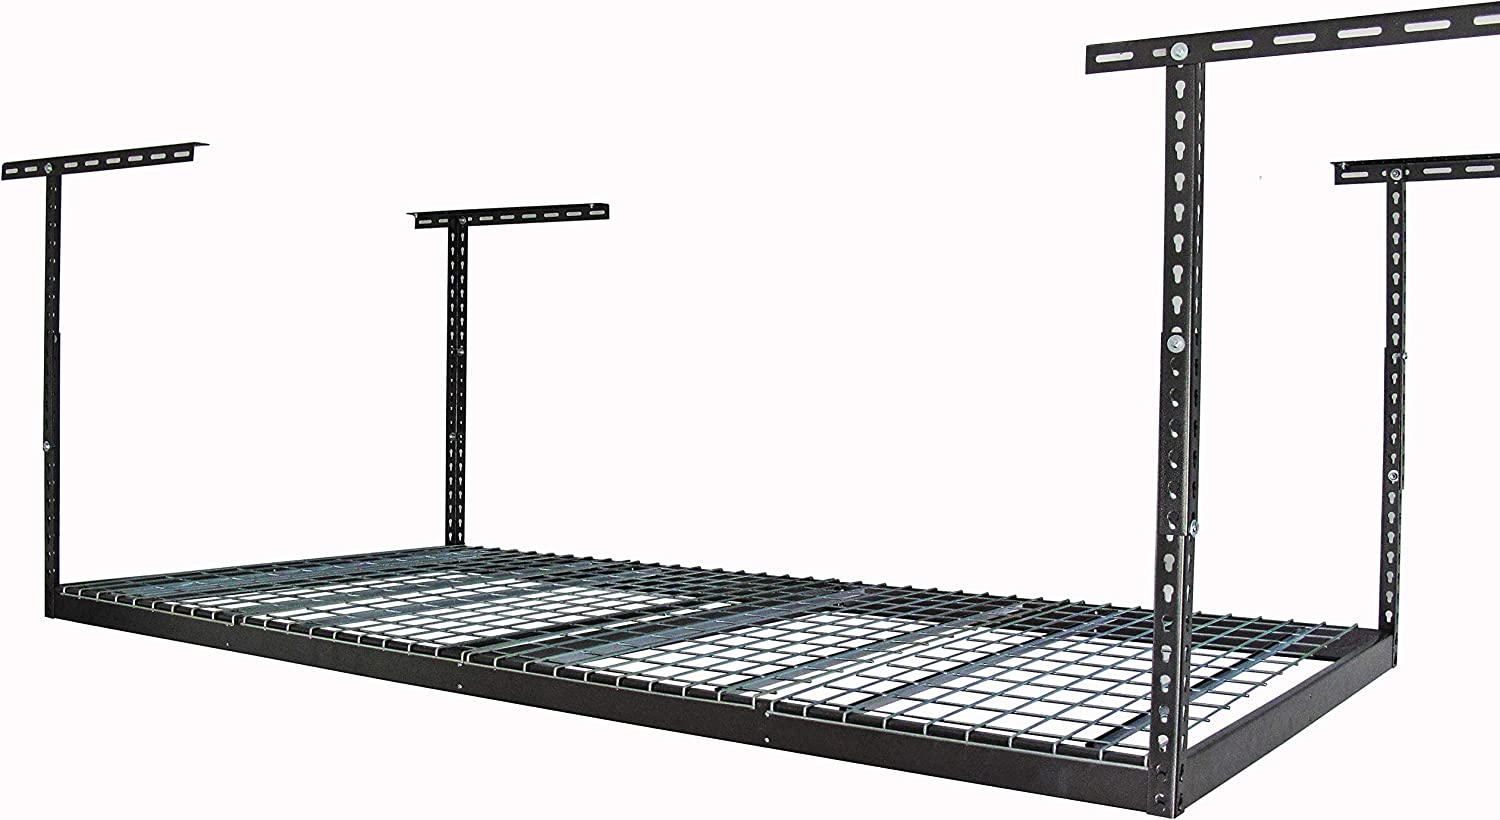 MonsterRax 4x8 Overhead Rack - Adjustable Ceiling Mounted Rack